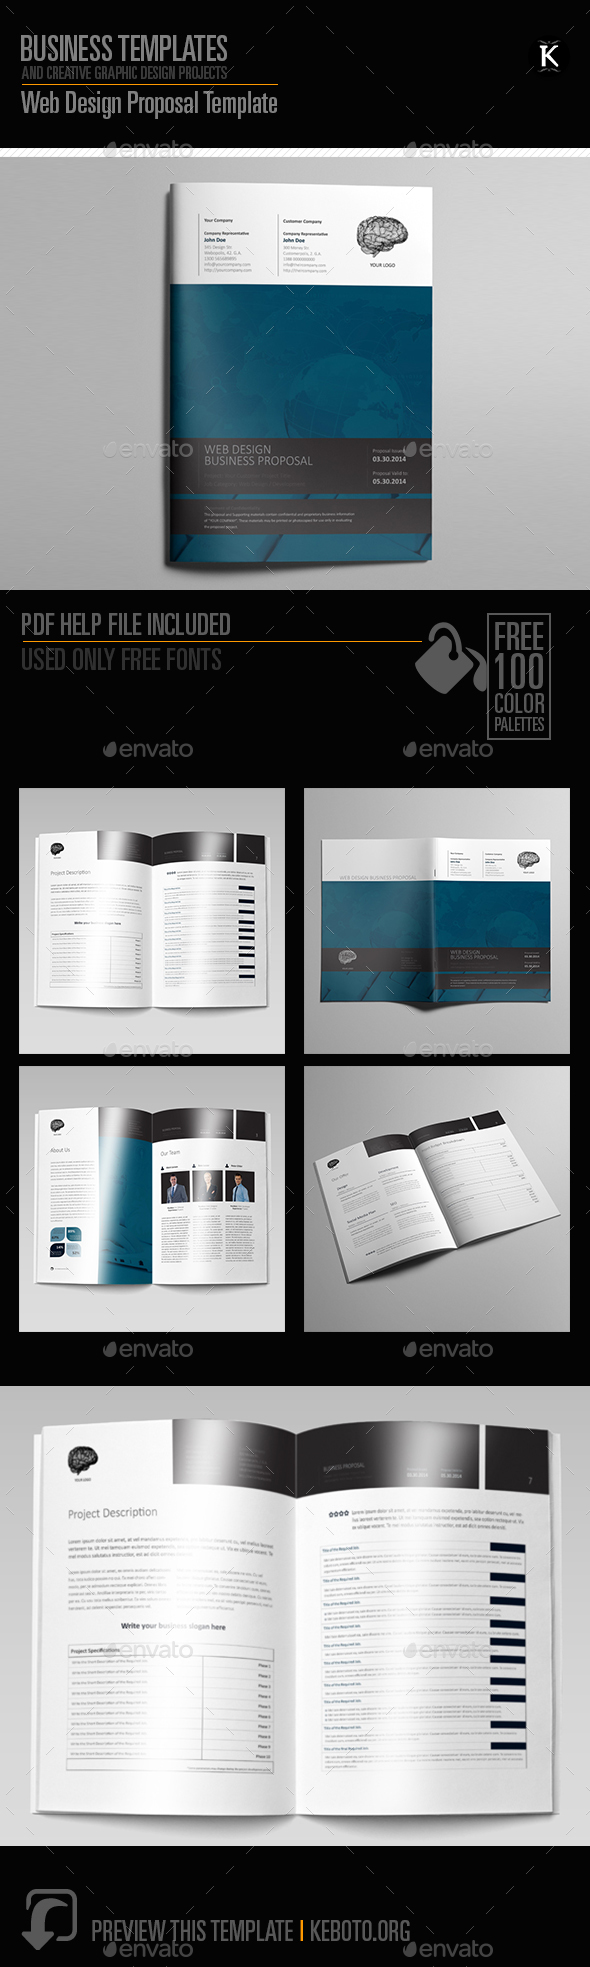 Web Design Proposal Template   Proposals U0026 Invoices Stationery